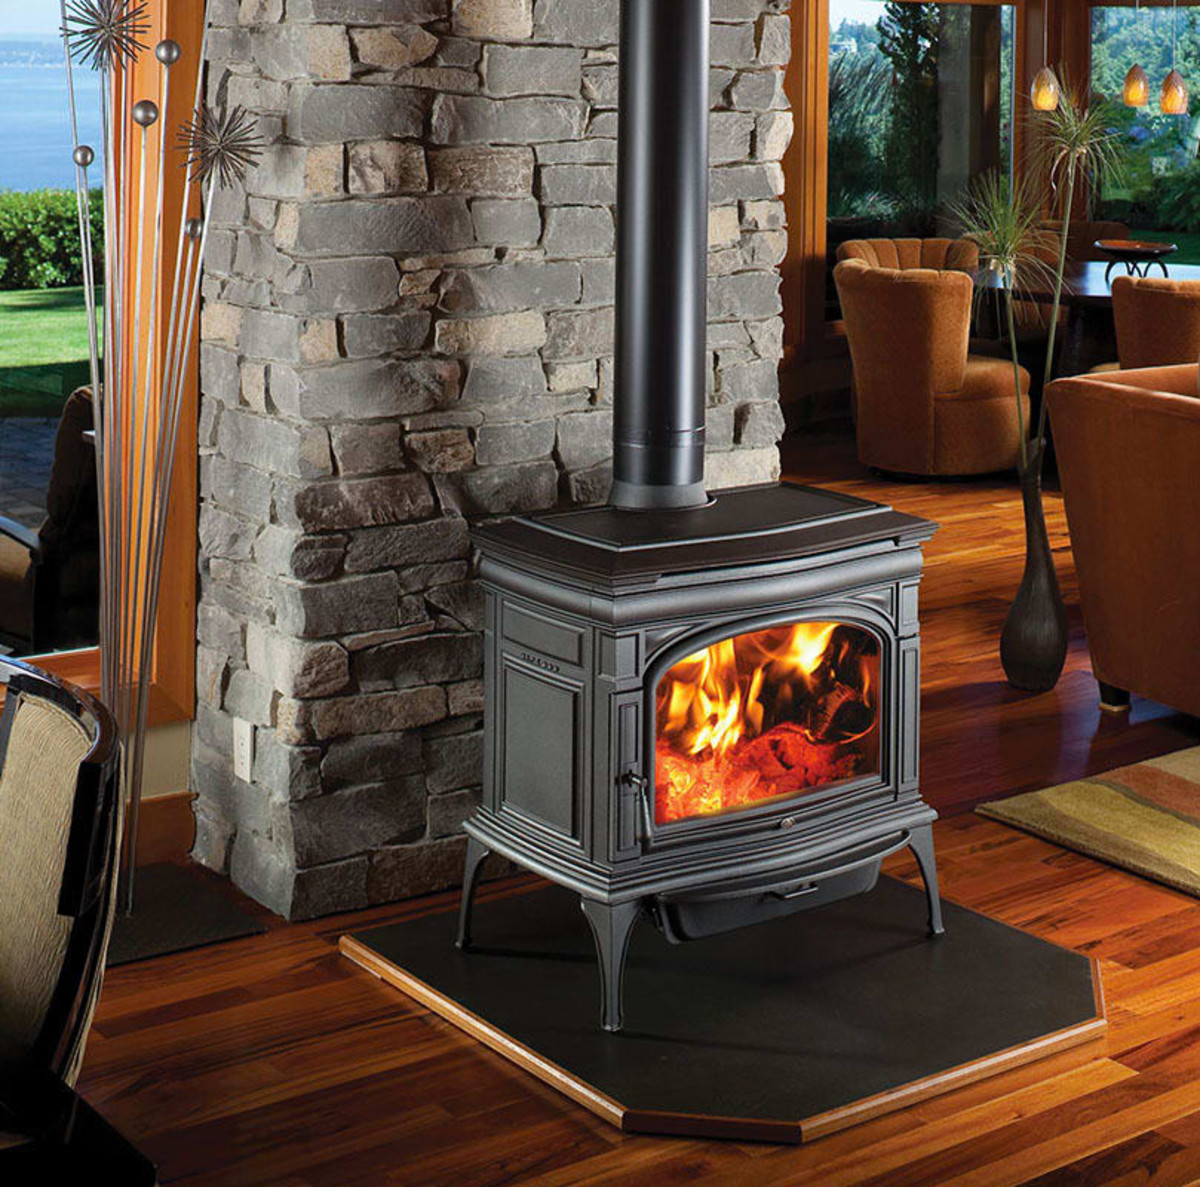 This heating stove is from Fires of Tradition.